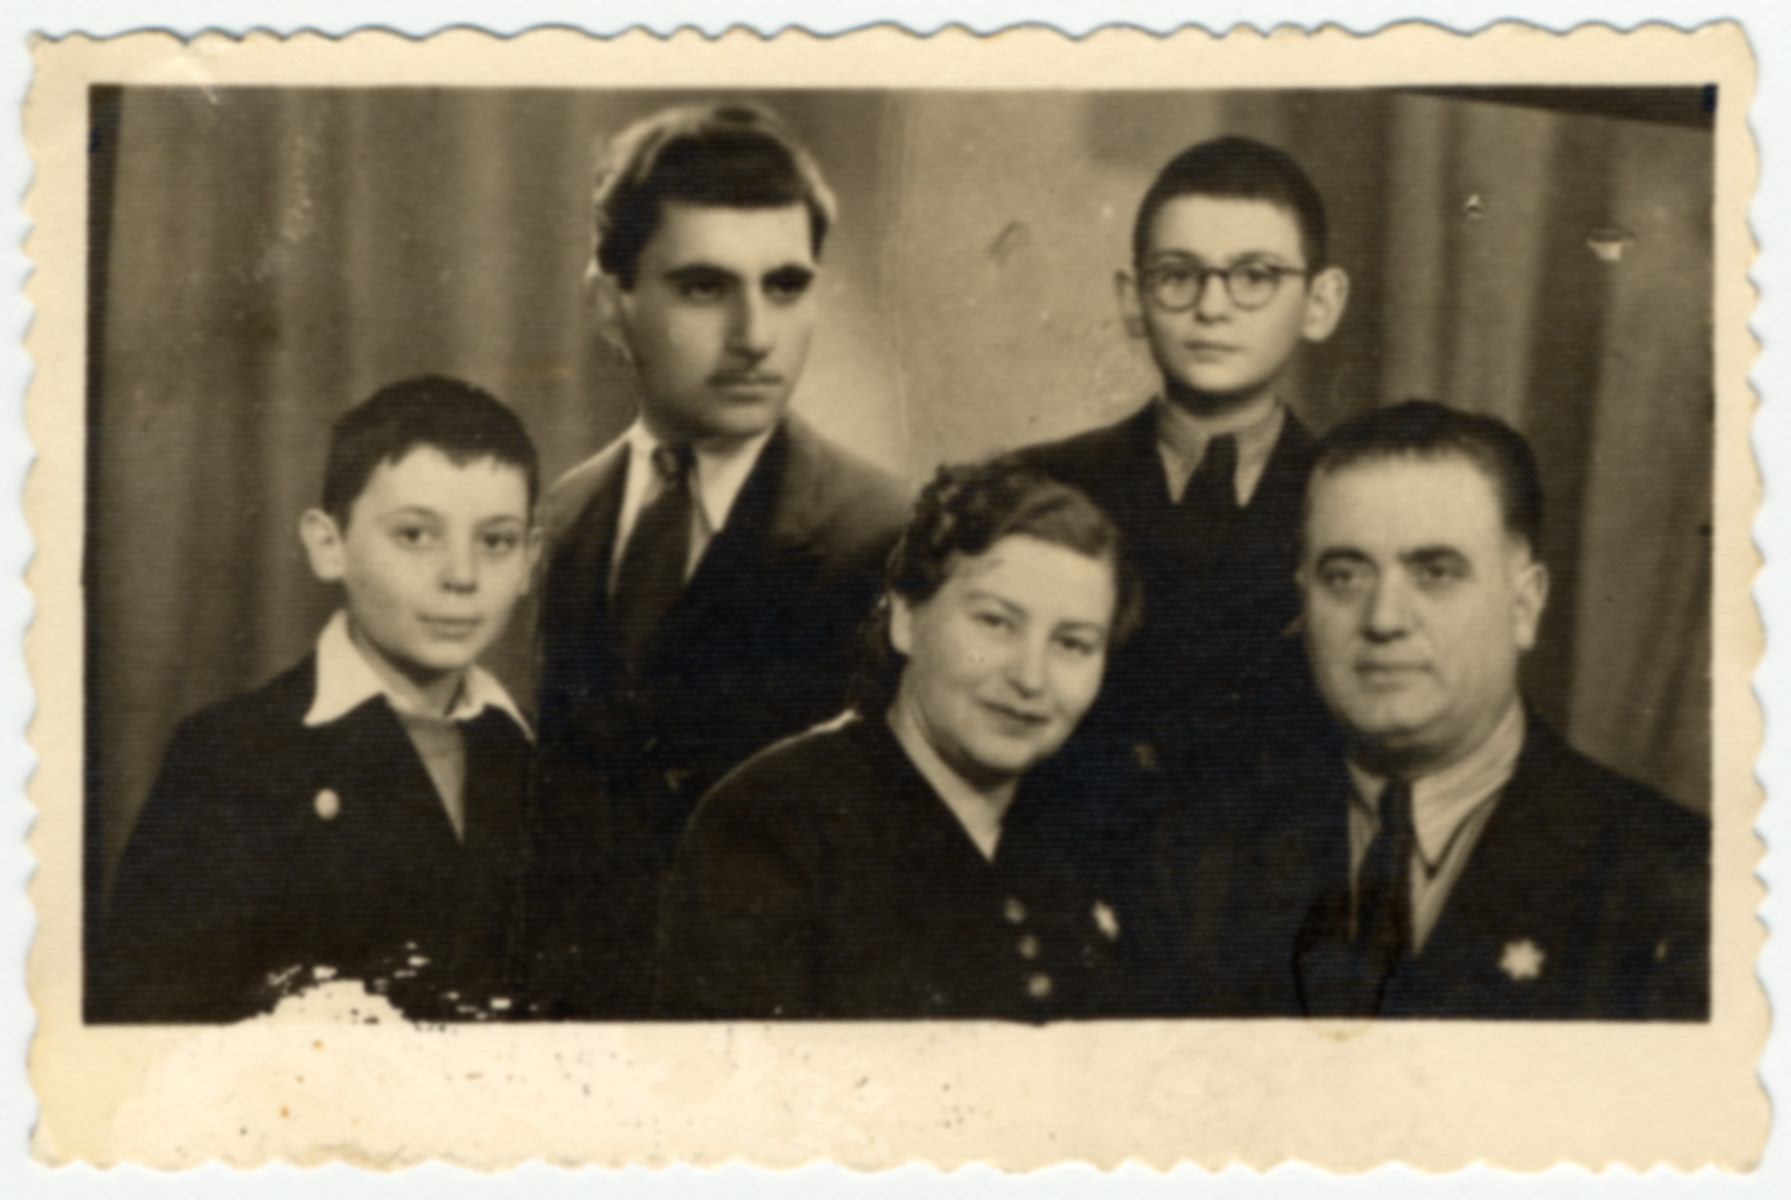 Composite photograph of the Farhis, a Bulgarian Jewish family wearing Stars of David.  The oldest son David was not present for the photograph so his picture was added later.  Also pictured from left to right are Moise, Karolina, Albert and Nissim Farhi.